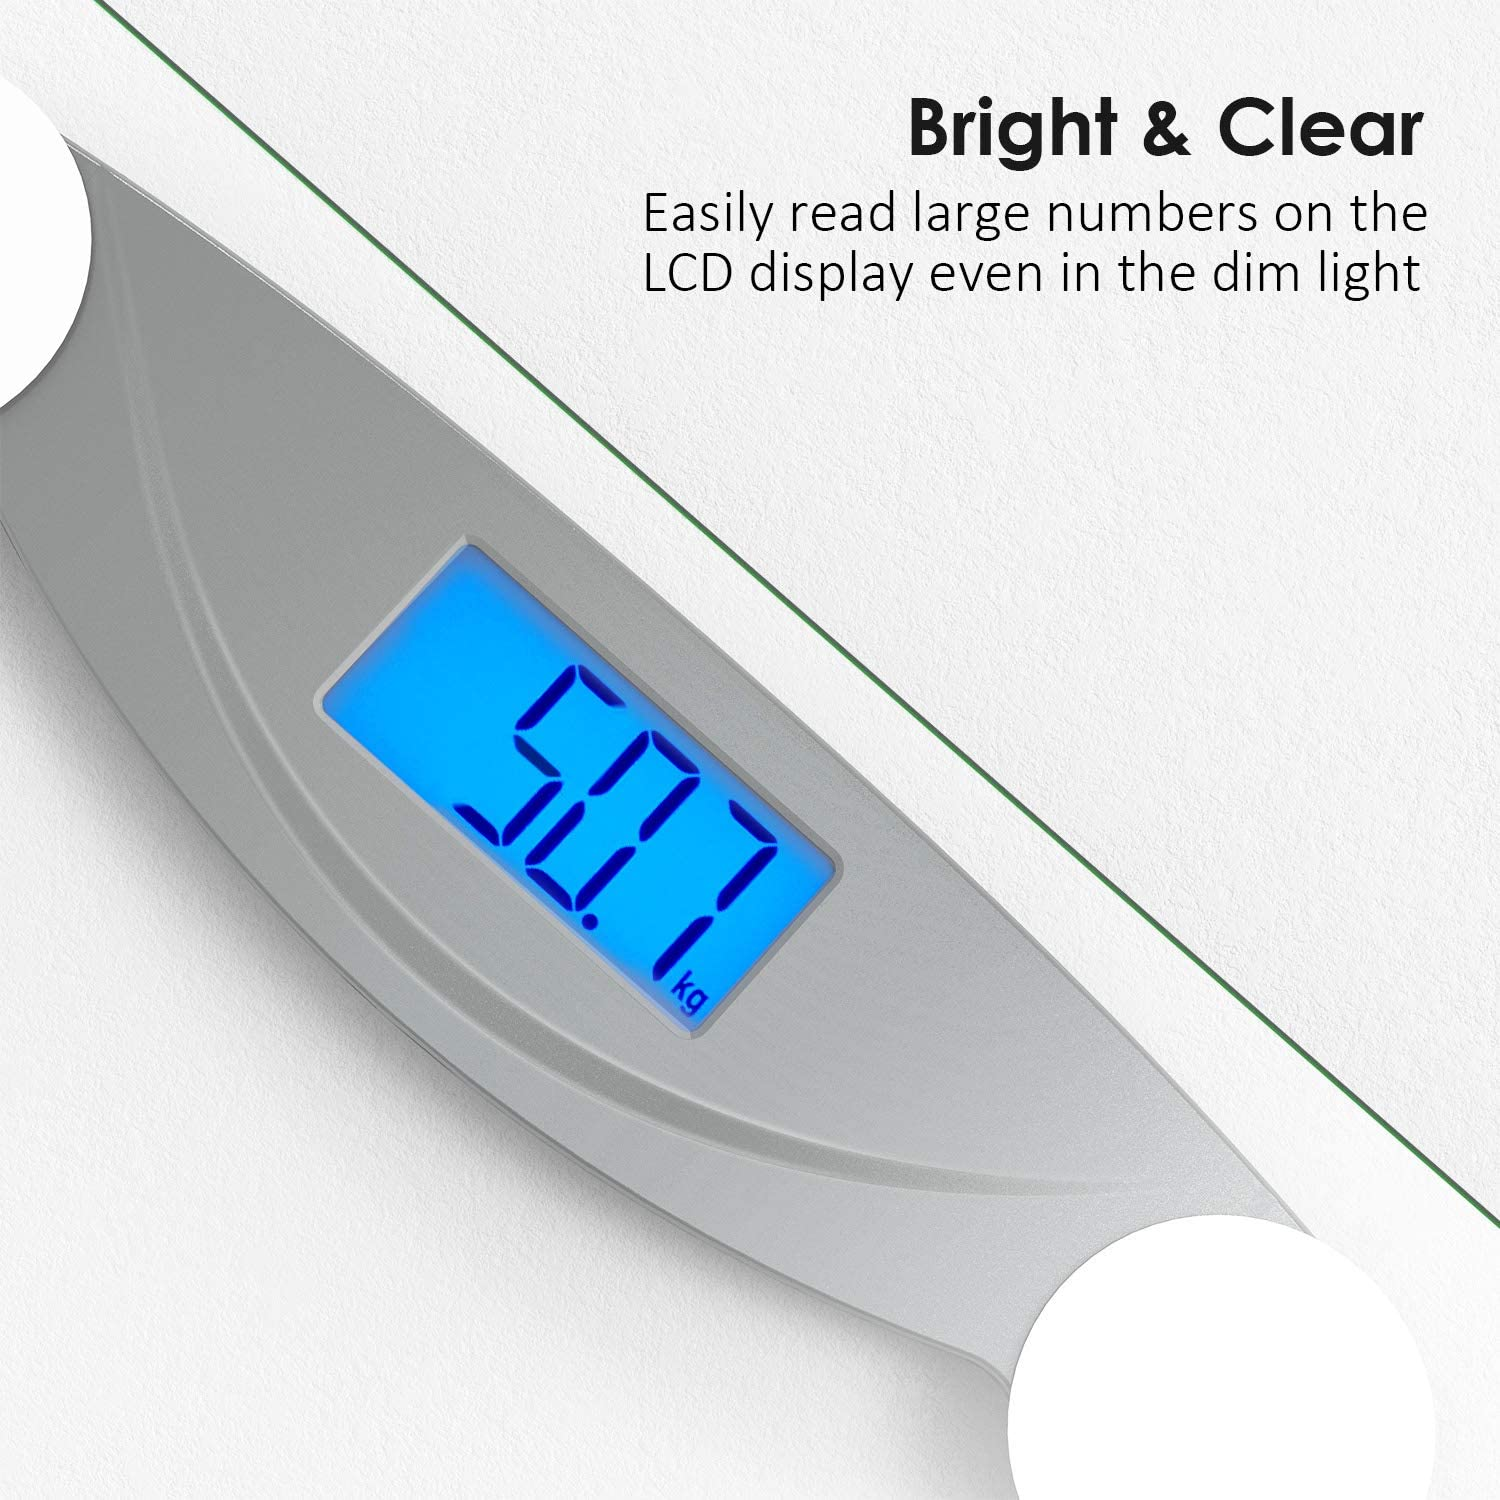 VOXON Digital Body Weight Bathroom Scales with LED Display